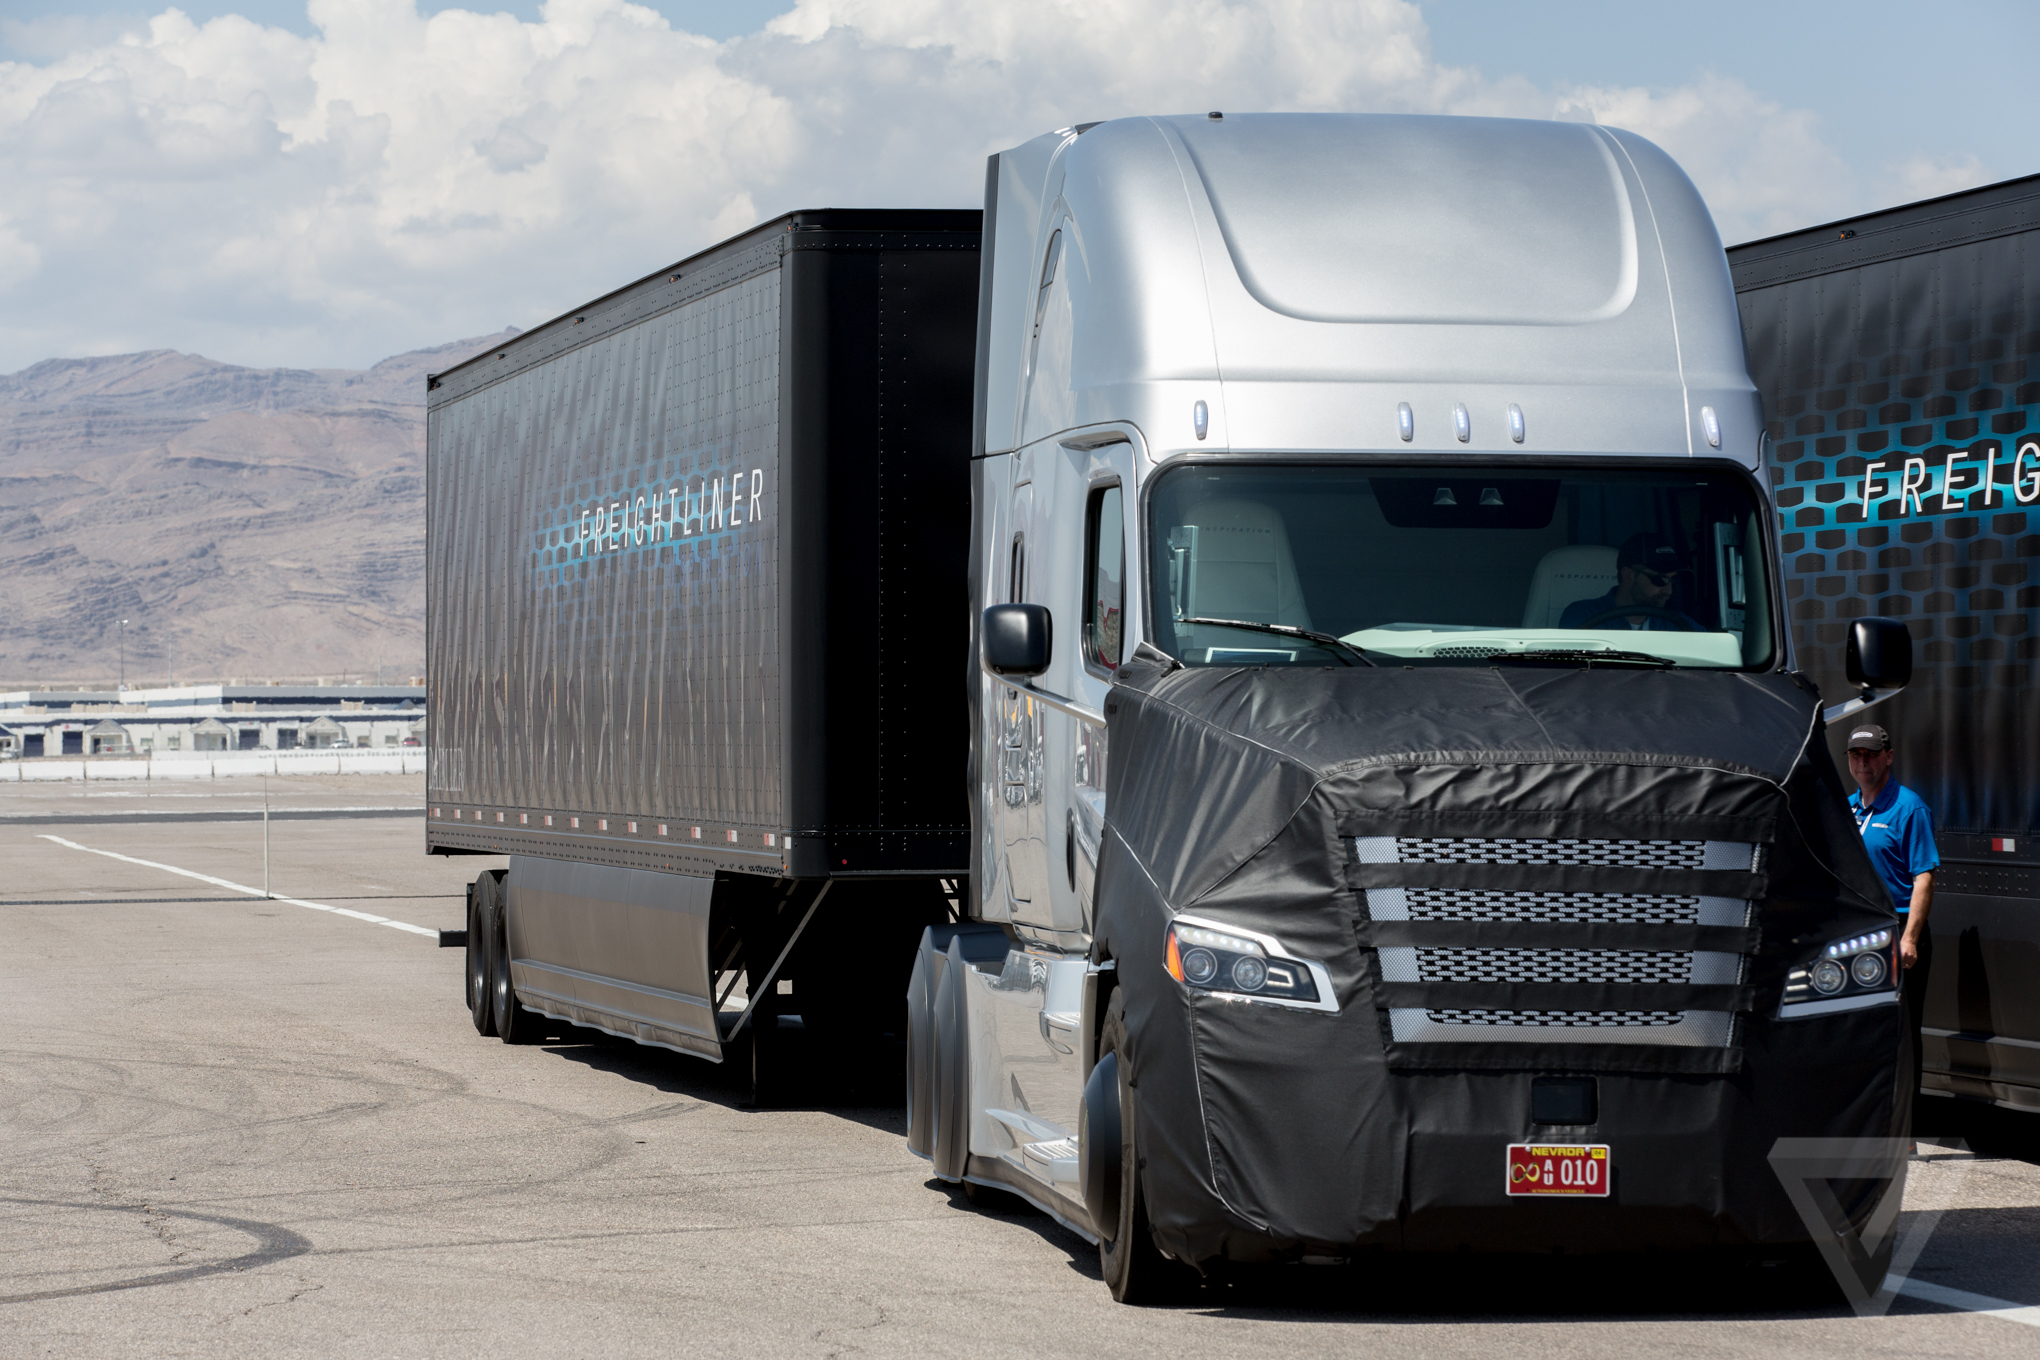 Freightliner Self Driving Big Rig In Photos The Verge Truck Fuel Filters Inspiration Is A Modified Version Of Companys Cascadia Evolution Model Most Same With Exception